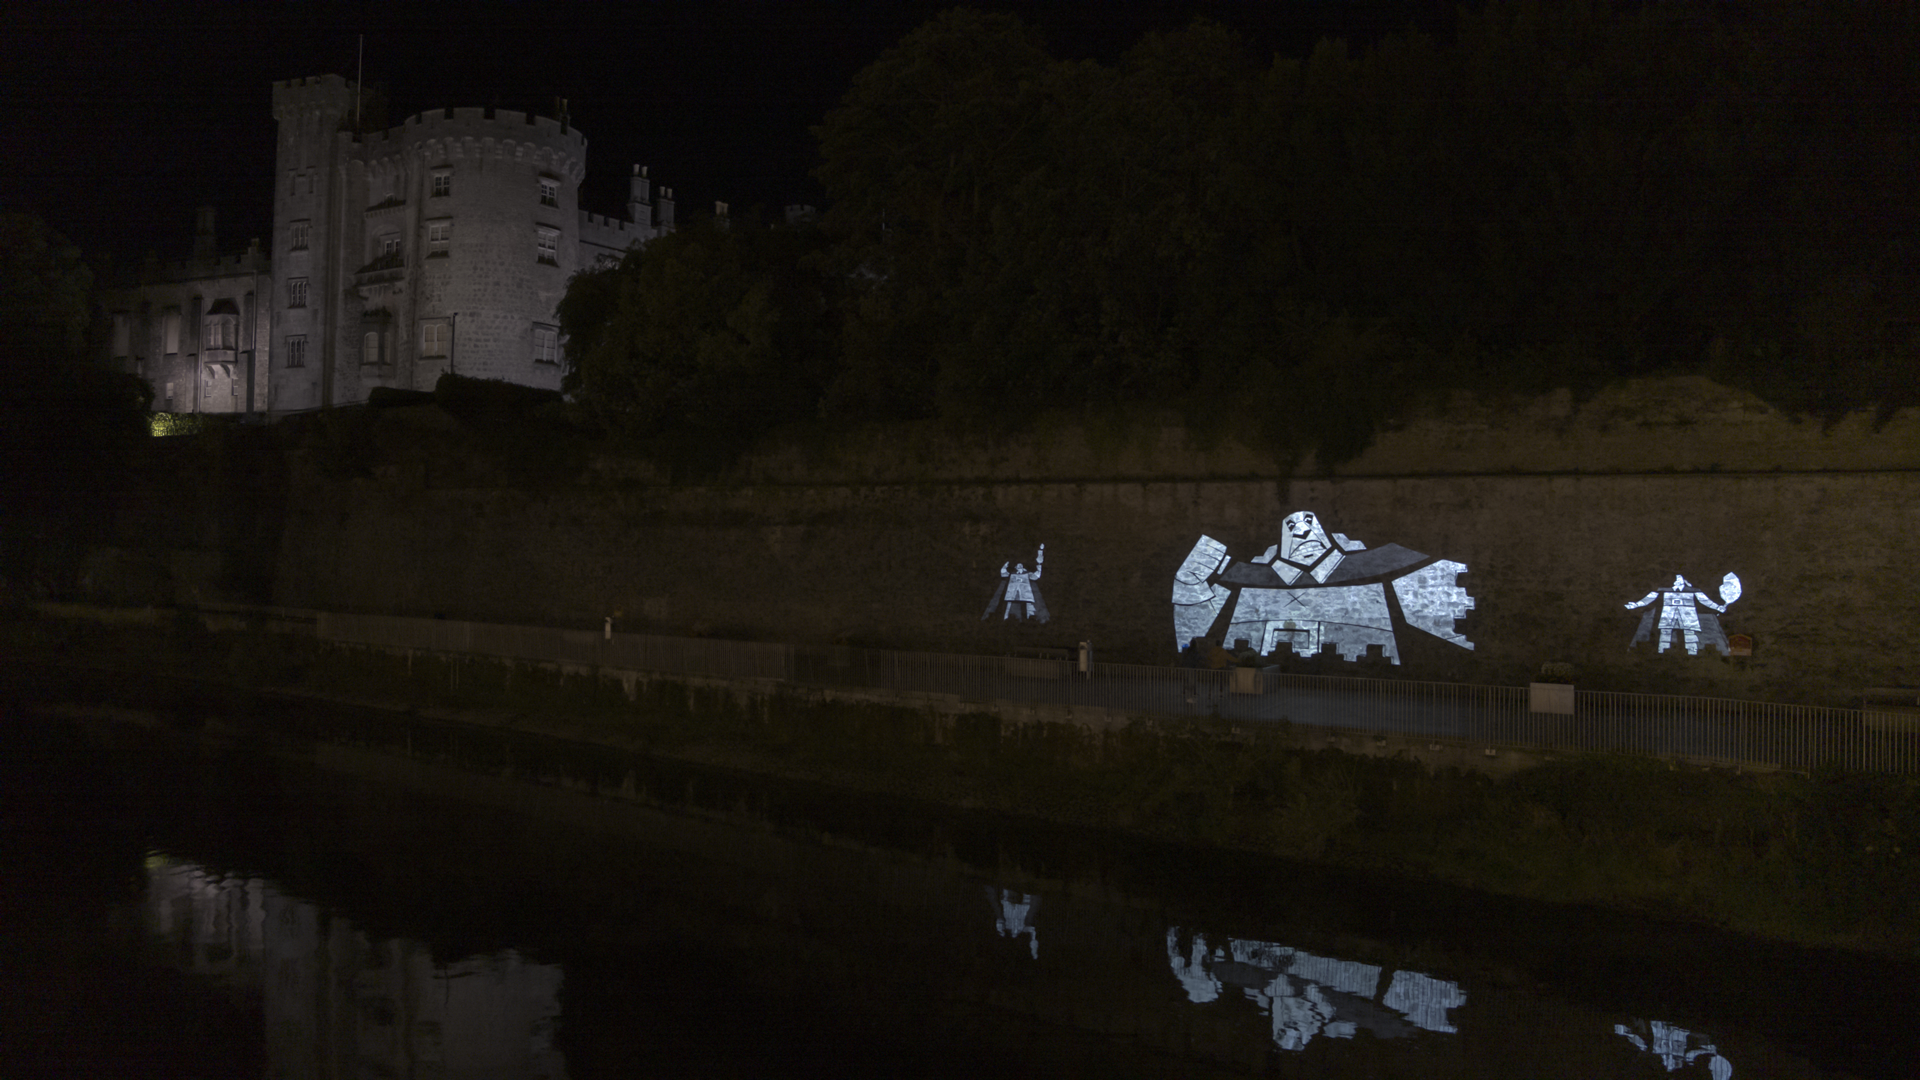 Projection mapping a character for Wolkwalkers